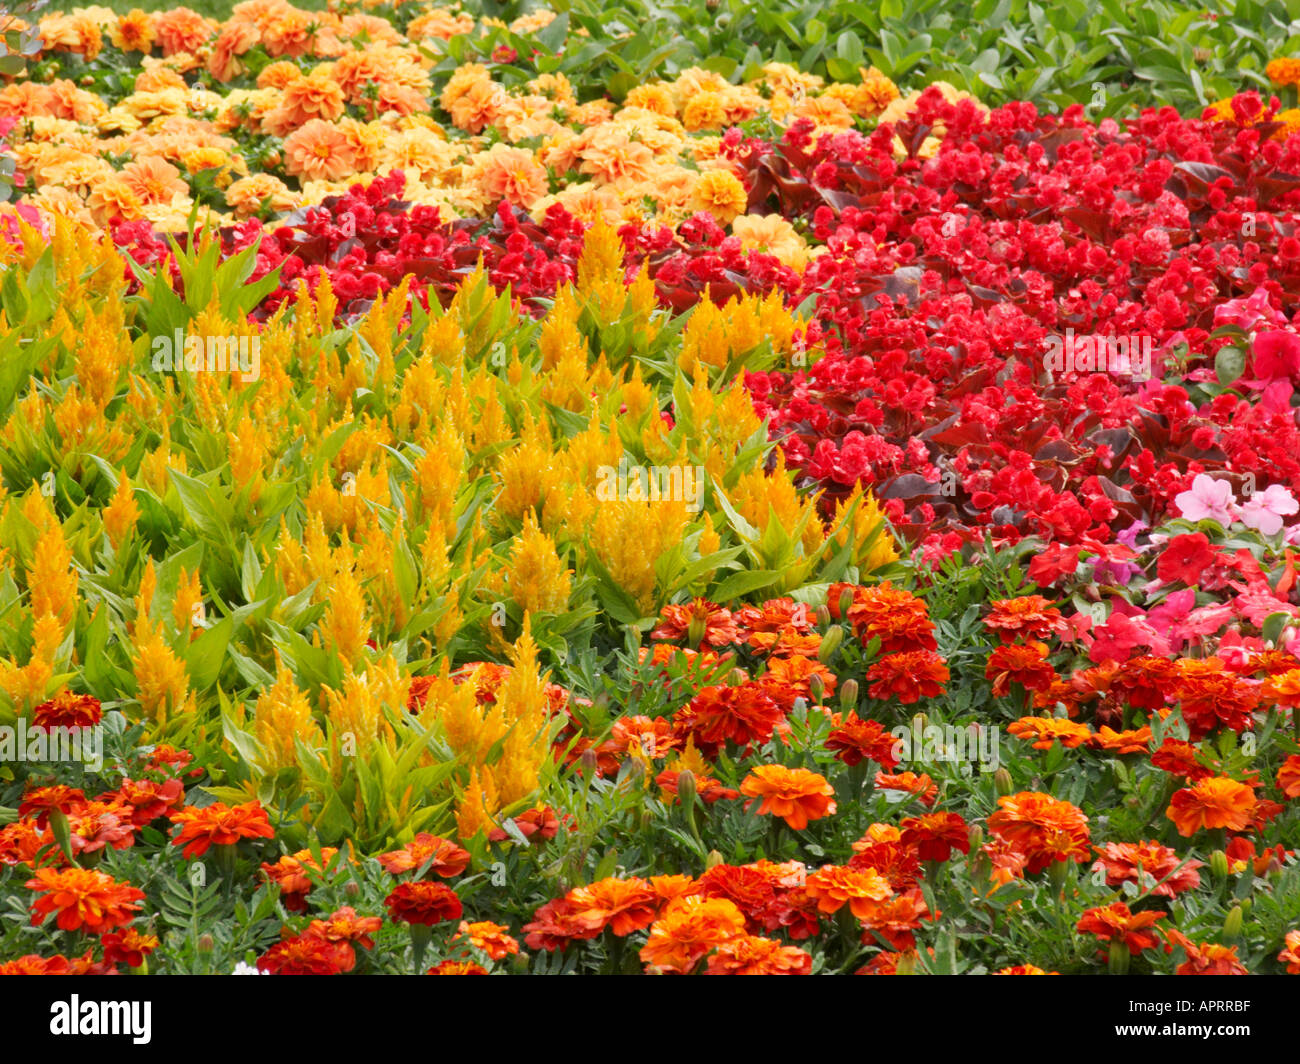 Tatton Flower Show Traditional council planting colourful annuals including Celosia busy lizy and tagetes Stock Photo